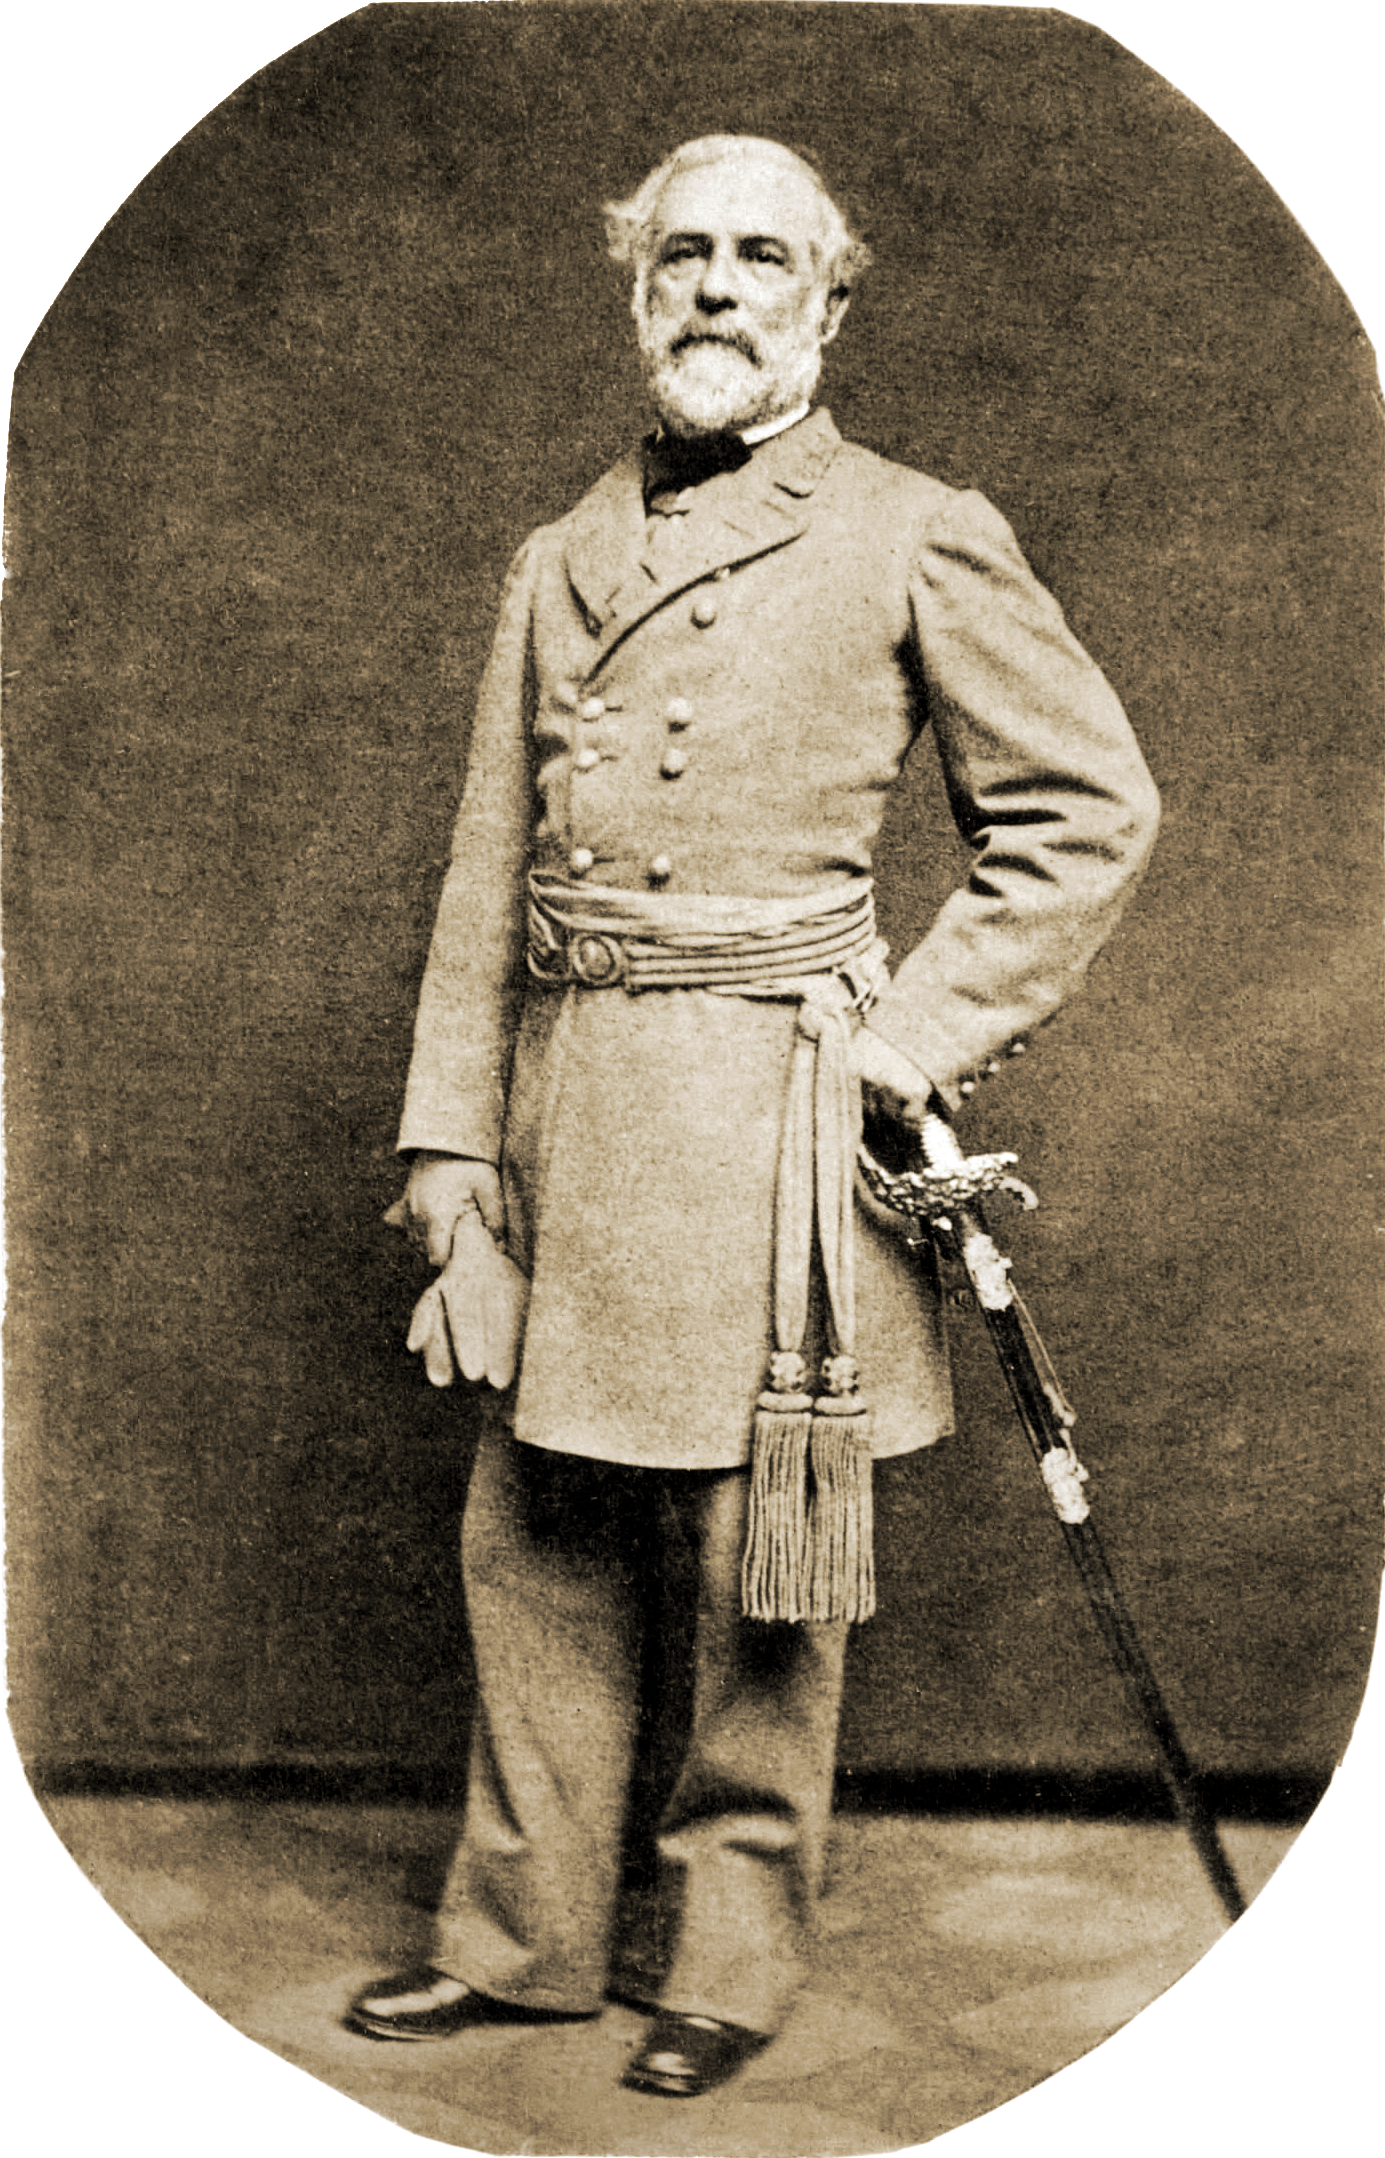 a biography of robert e lee a confederate general Robert edward lee, known as robert e lee, is best known as the american soldier who commanded the confederate army of northern virginia during the american civil war robert e lee was born.